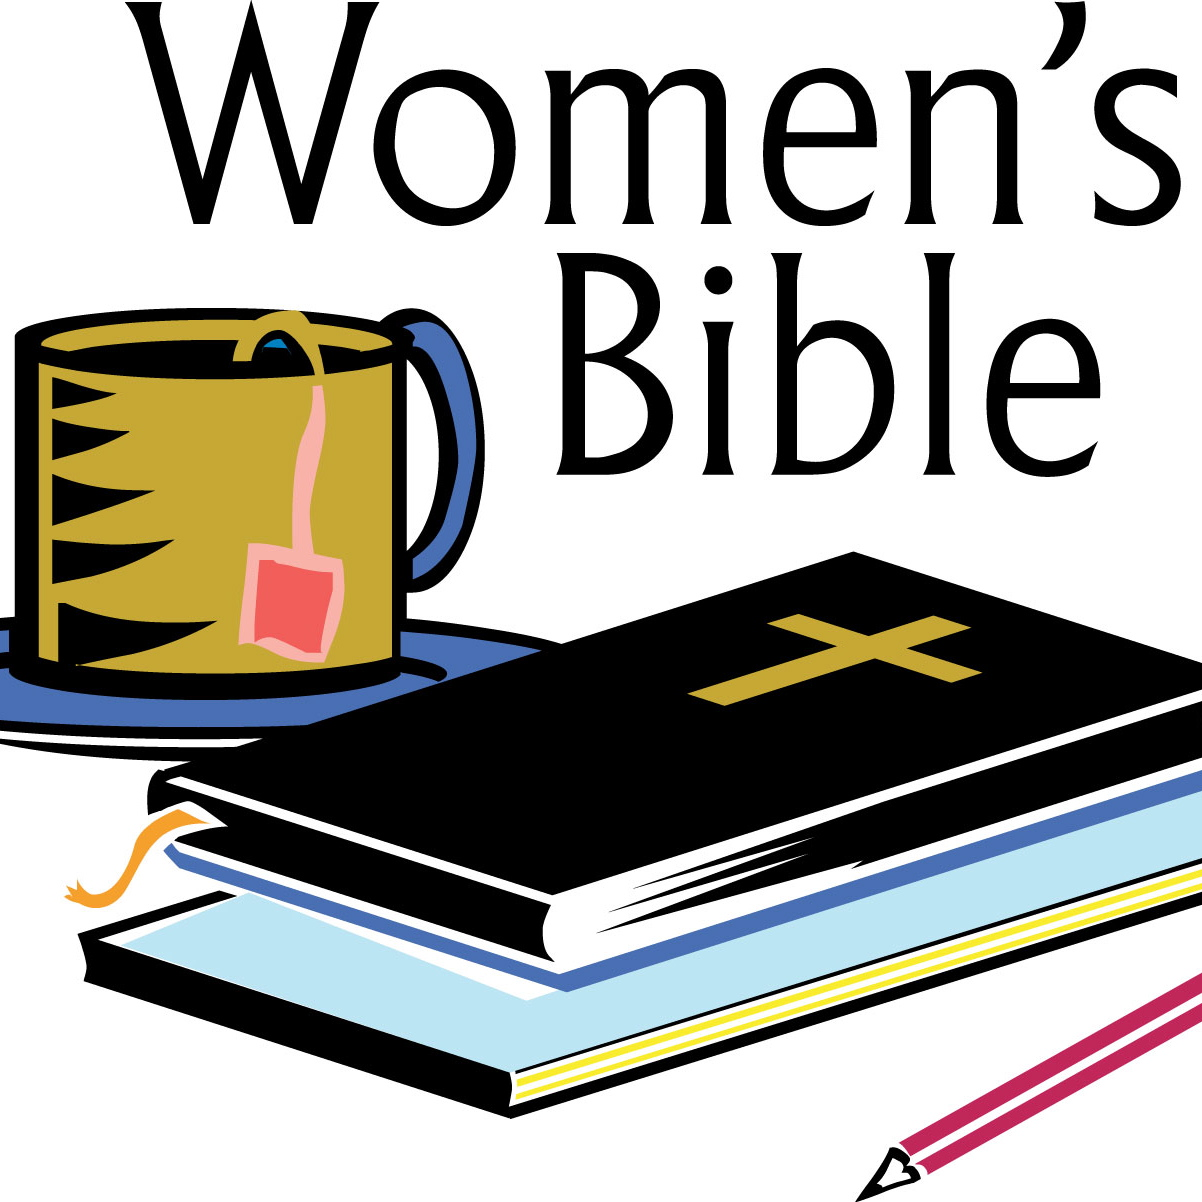 hight resolution of womens bible study clipart